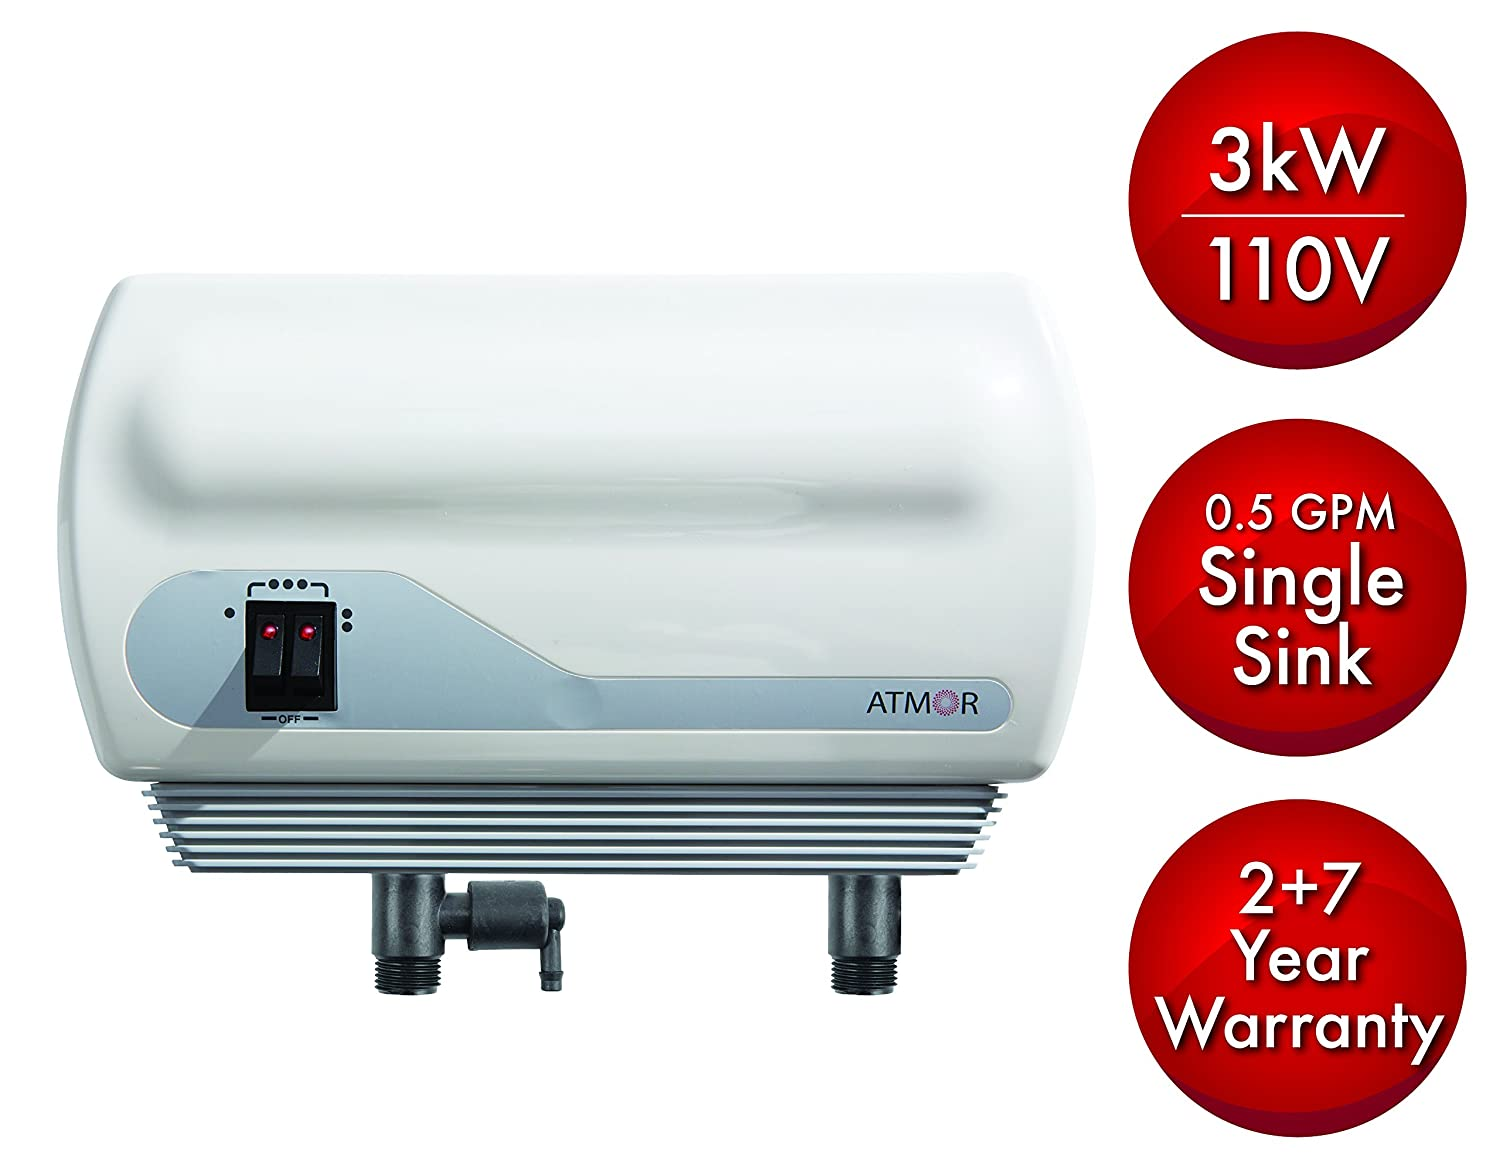 Atmor 3kw/110v SINGLE SINK 0.5 GPM Point-Of-Use Tankless Electric ...